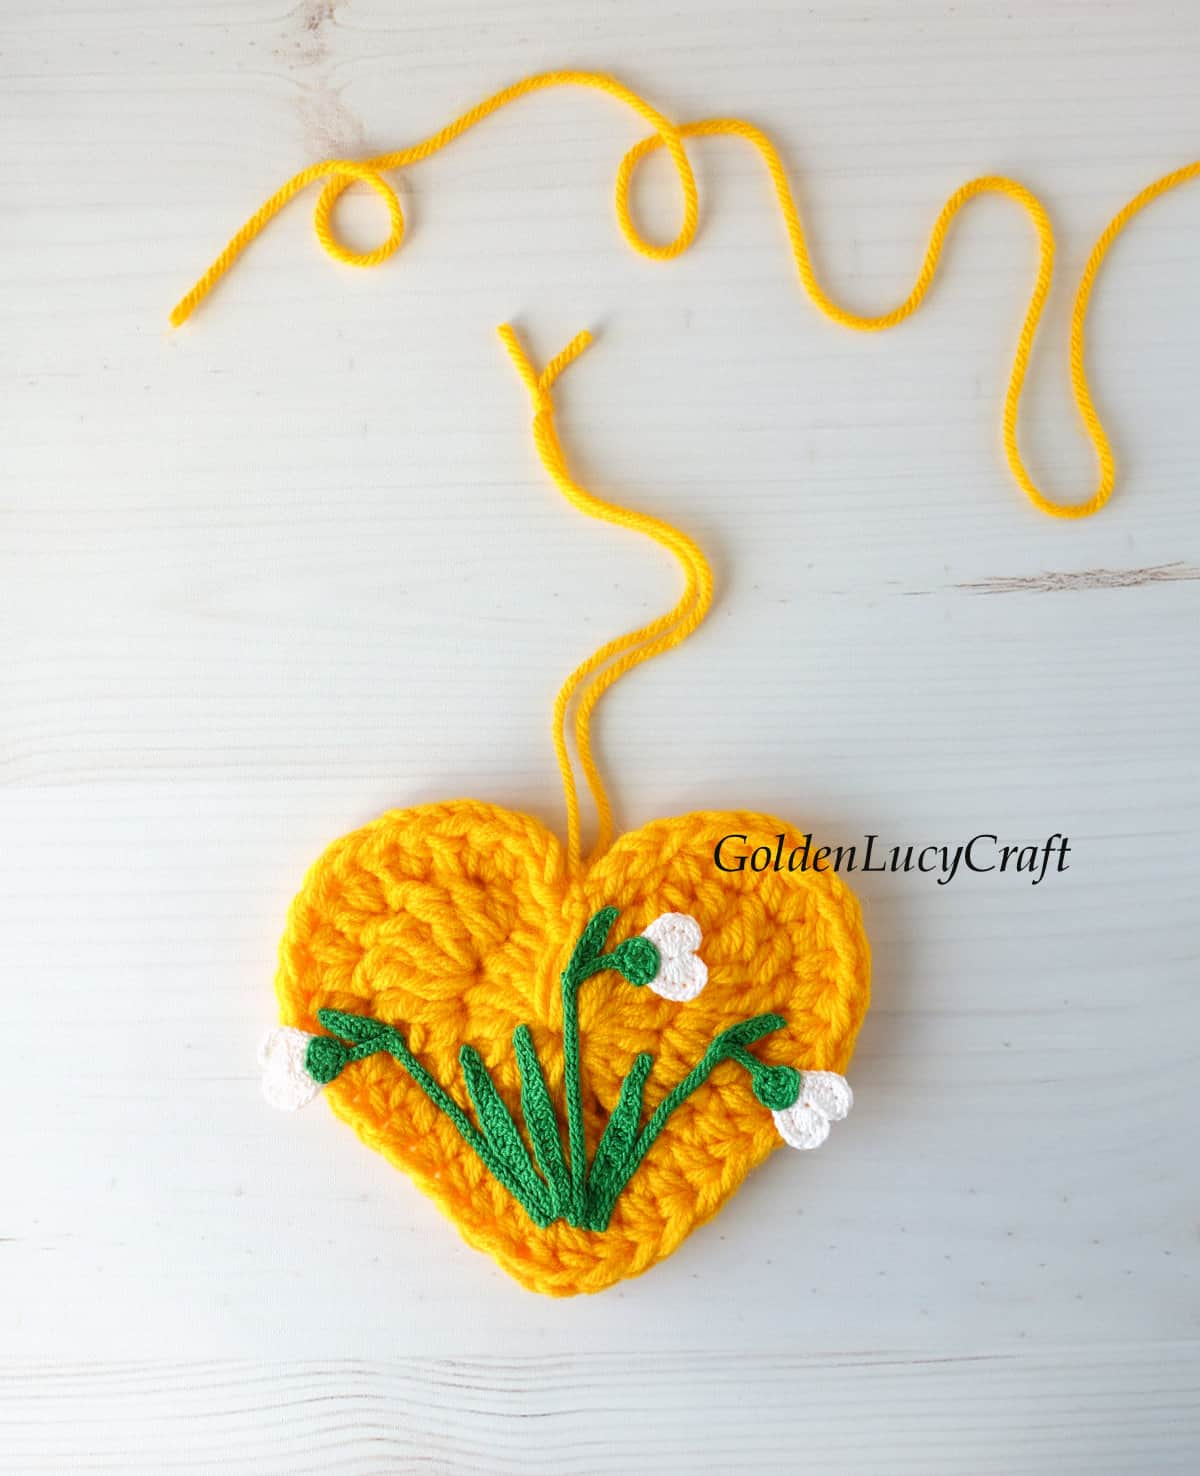 Crocheted yellow heart with crocheted snowdrops on it.